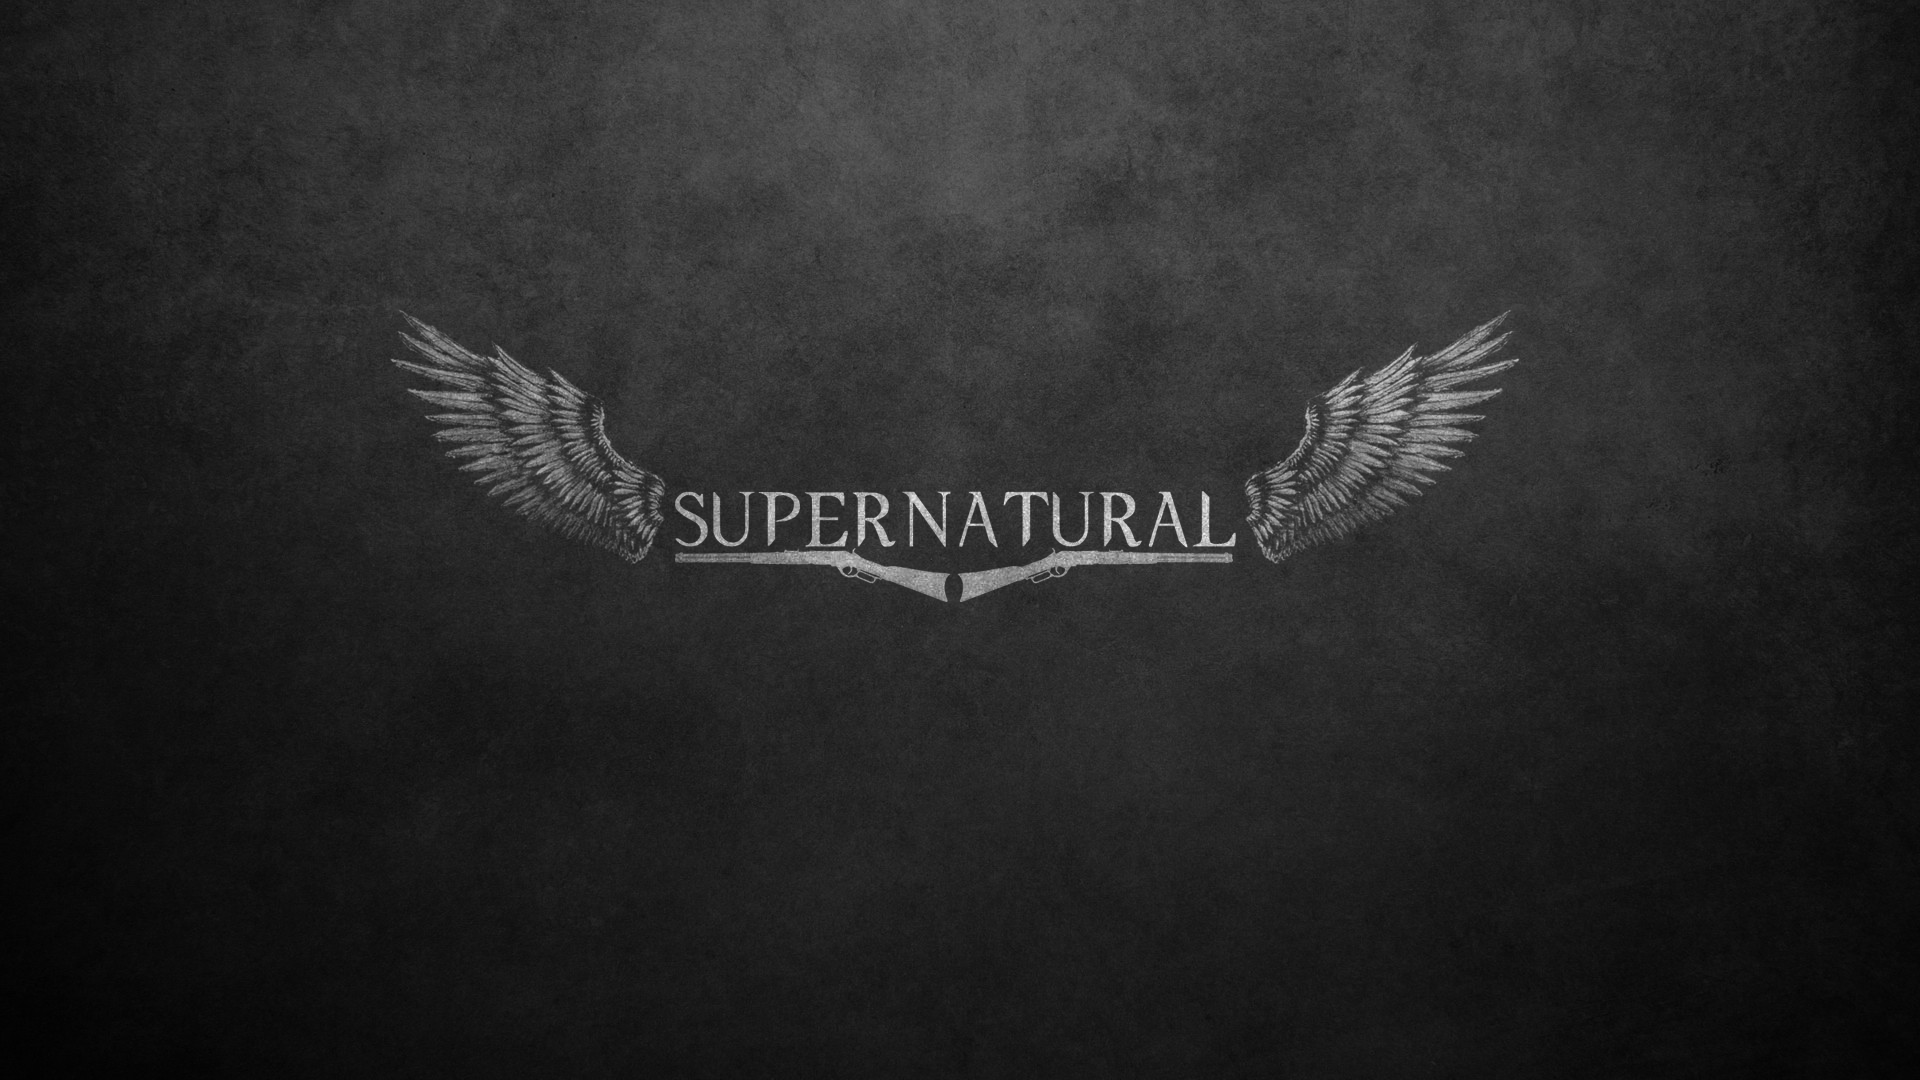 supernatural wallpapers desktop free hd desktop